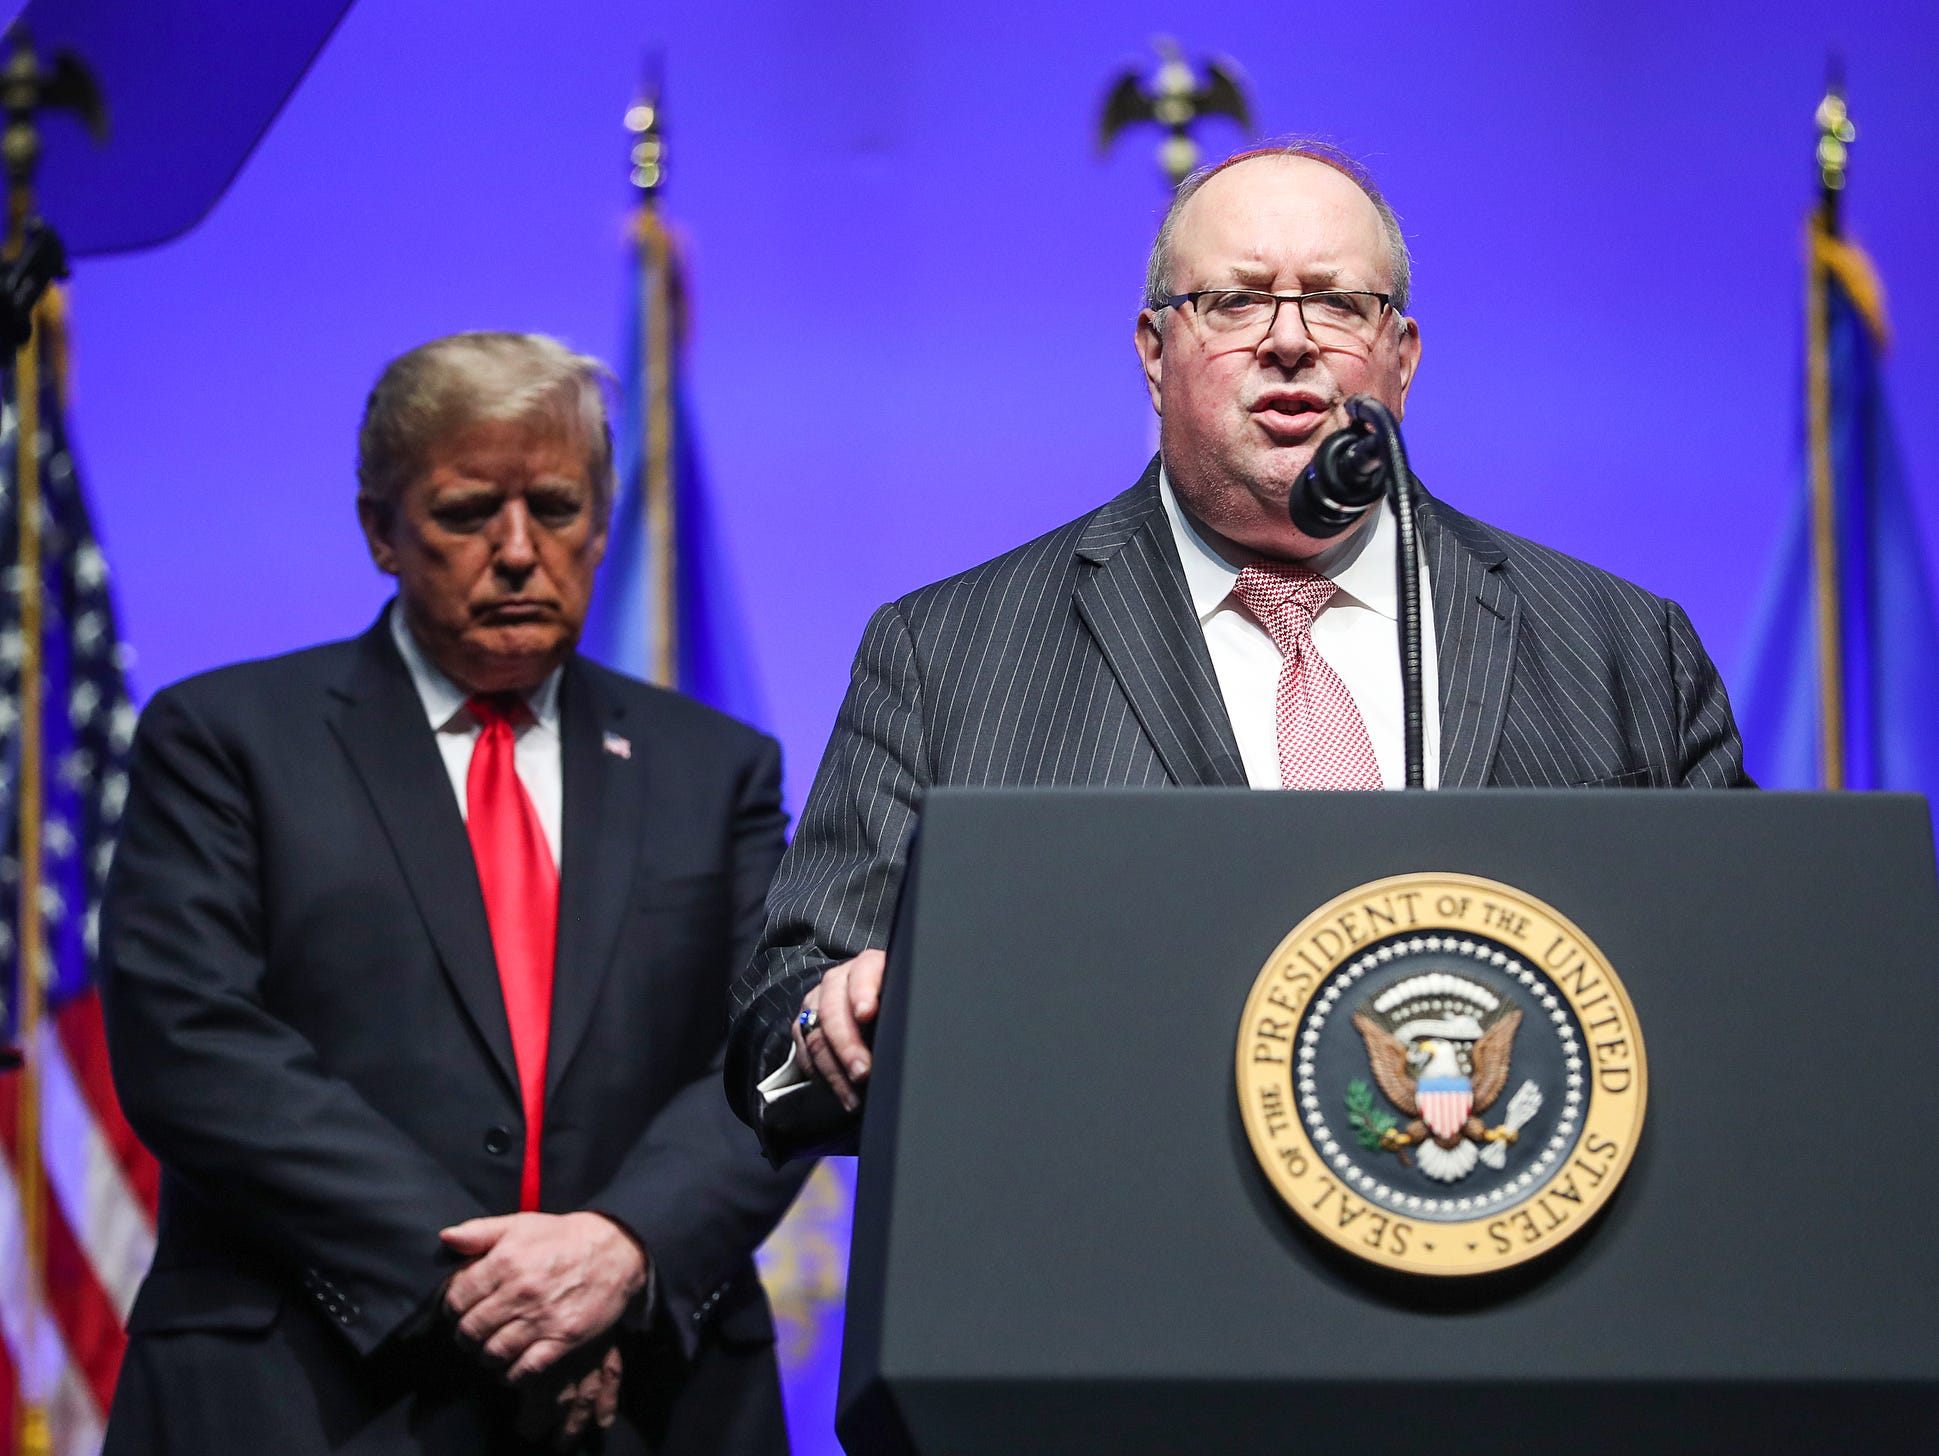 United States President Donald Trump listens as Rabbi Benjamin Sendrow says a prayer in light of the morning's synagogue shooting in Pittsburgh, during Trump's speech at the annual Future Farmers of America Convention and Expo at Banker's Life Fieldhouse in Indianapolis, Saturday, Oct. 27, 2018.